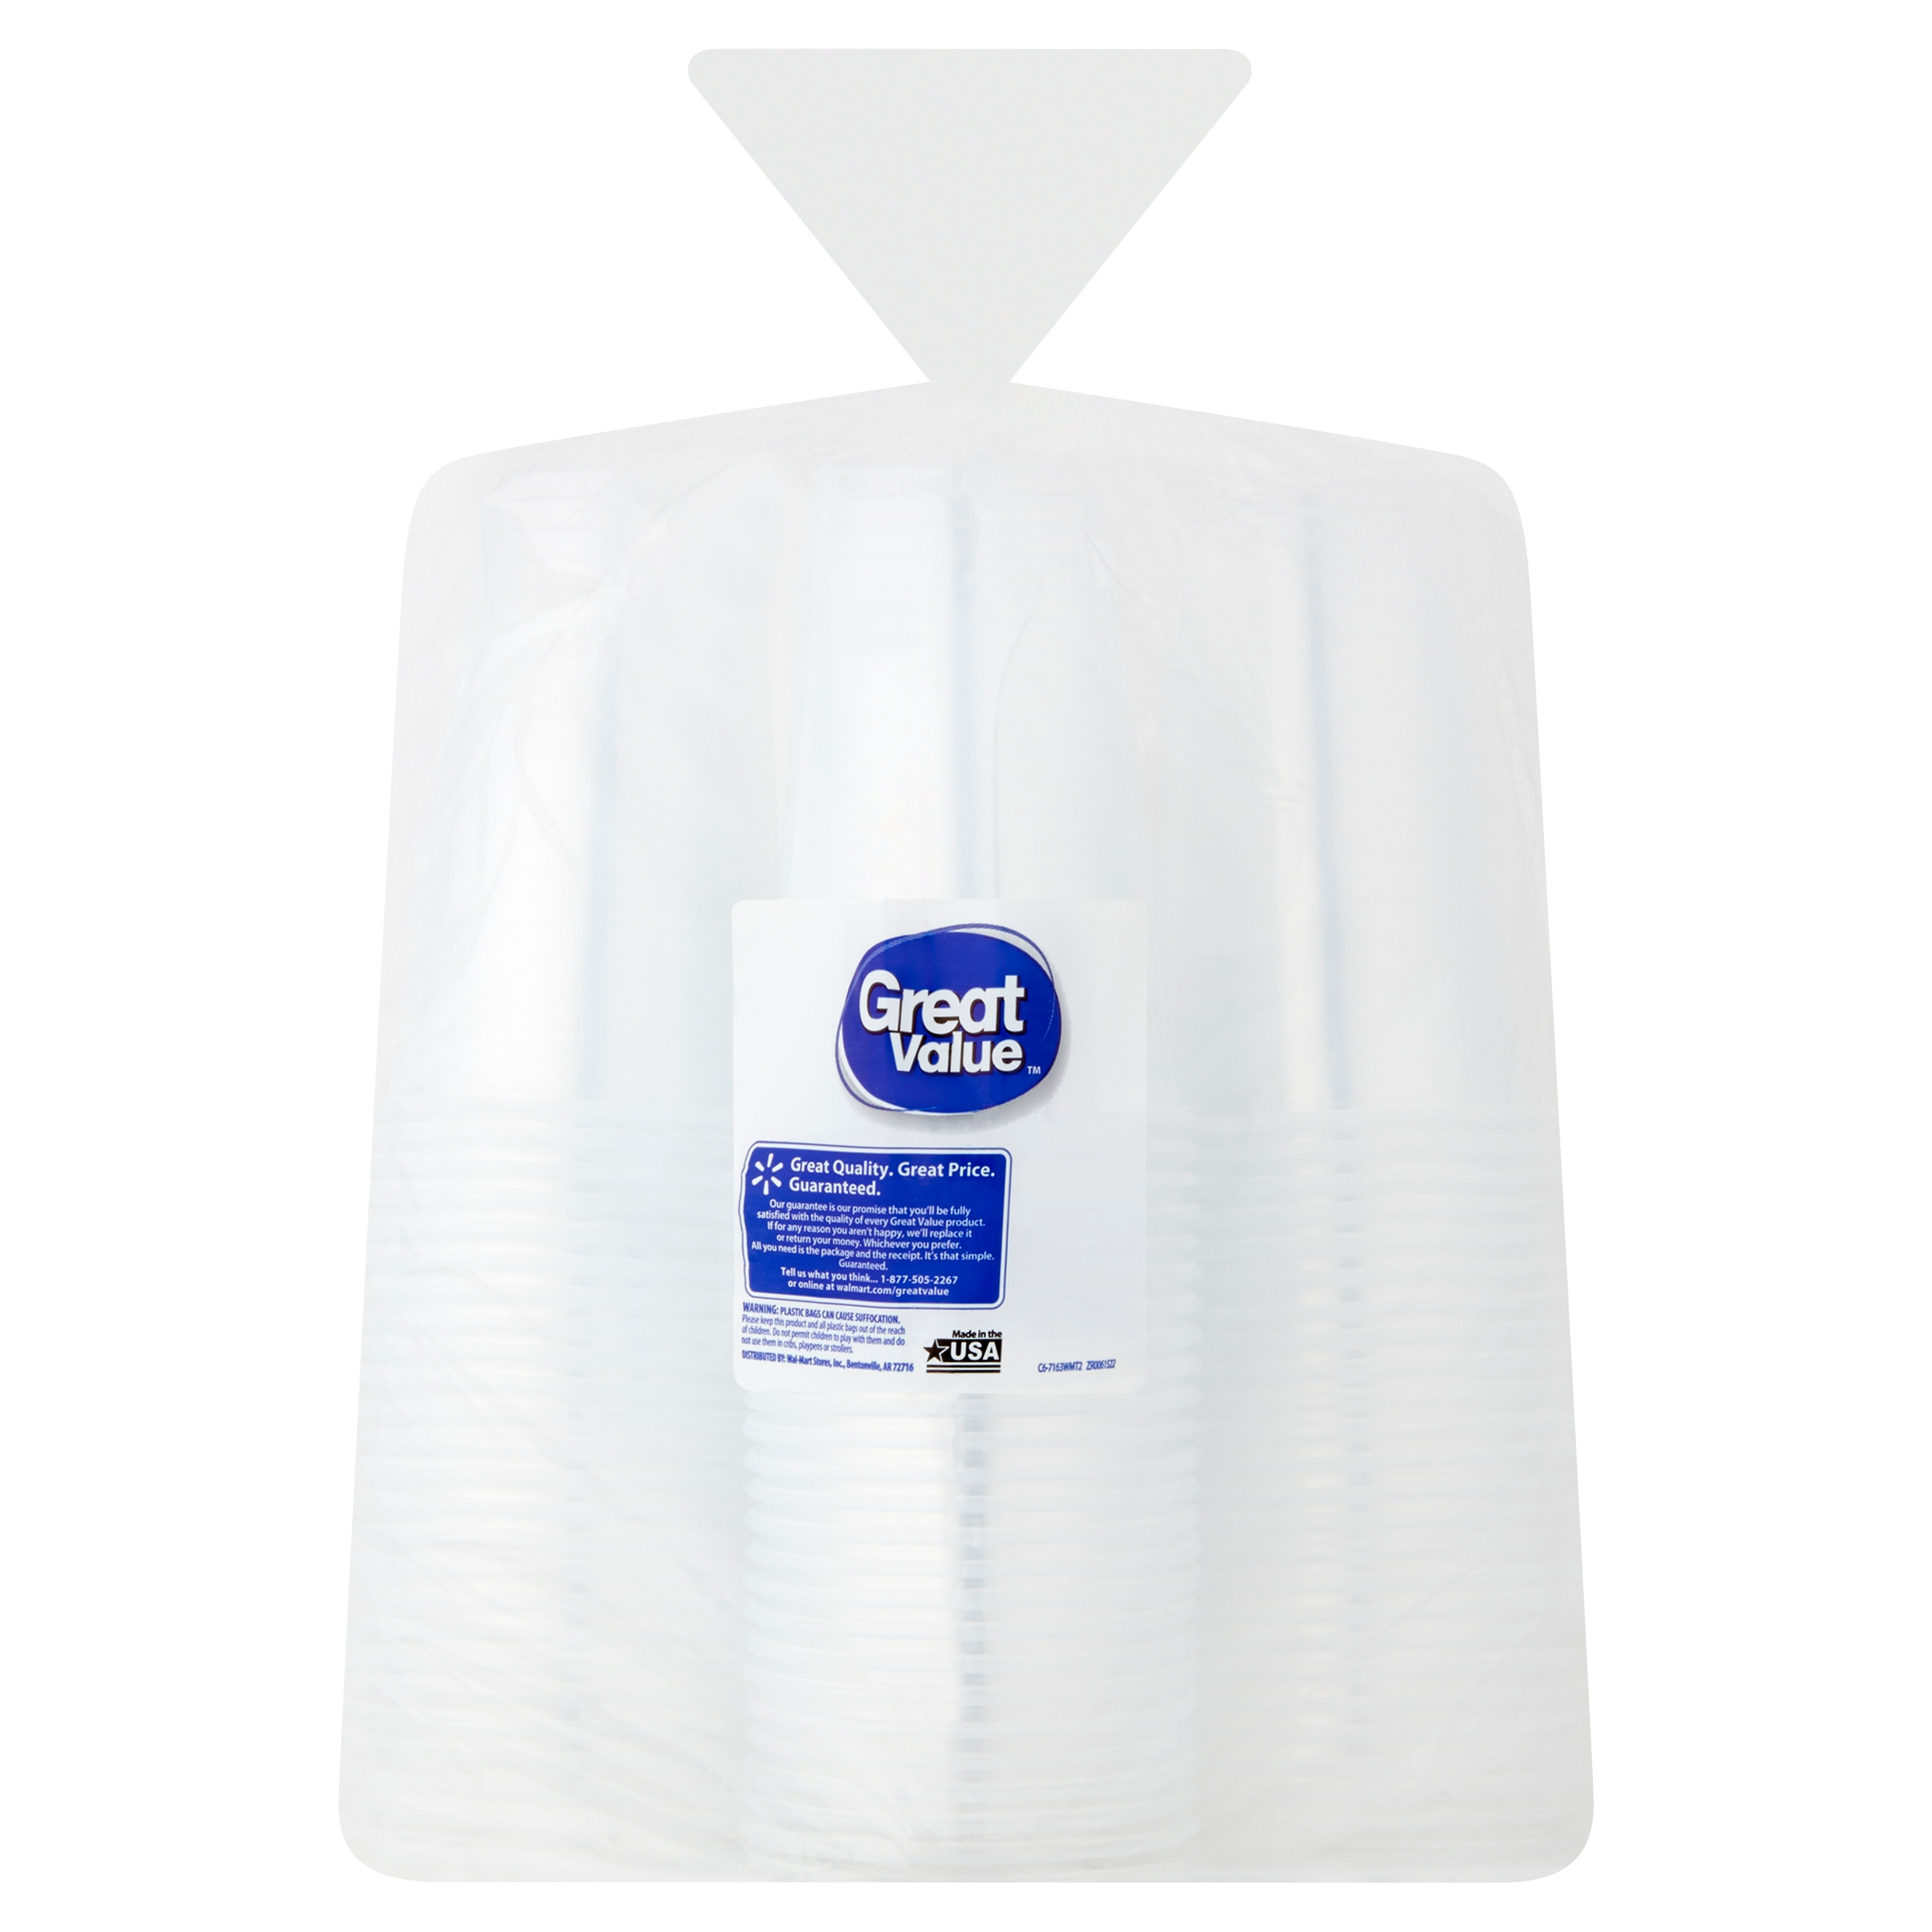 Great Value Clear Cups 100 count 16 fl oz